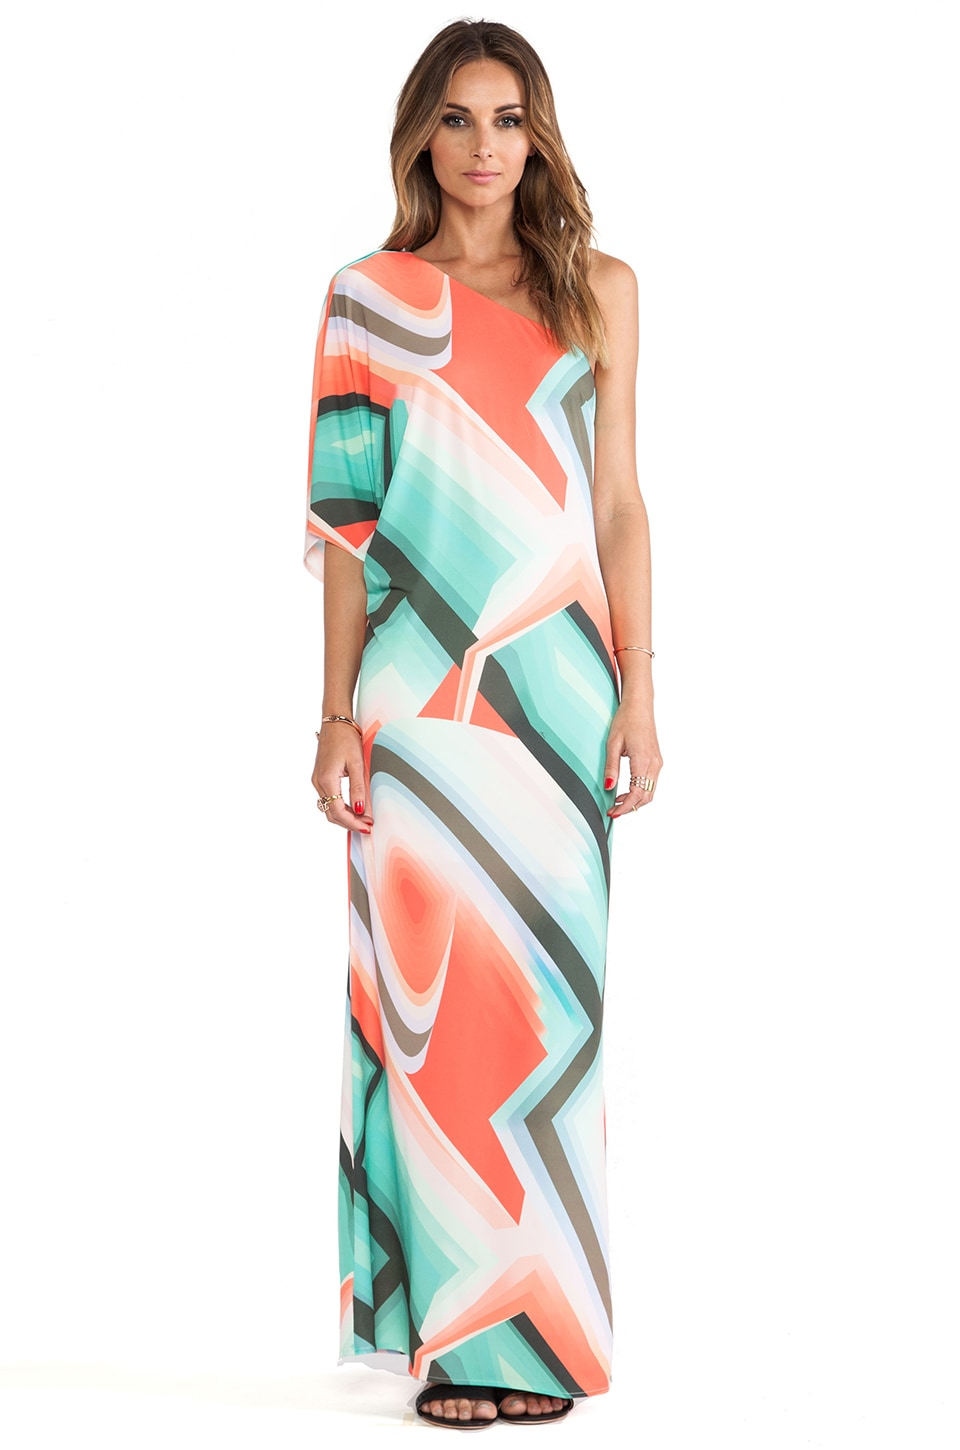 Trina Turk Sausalito Dress in Multi